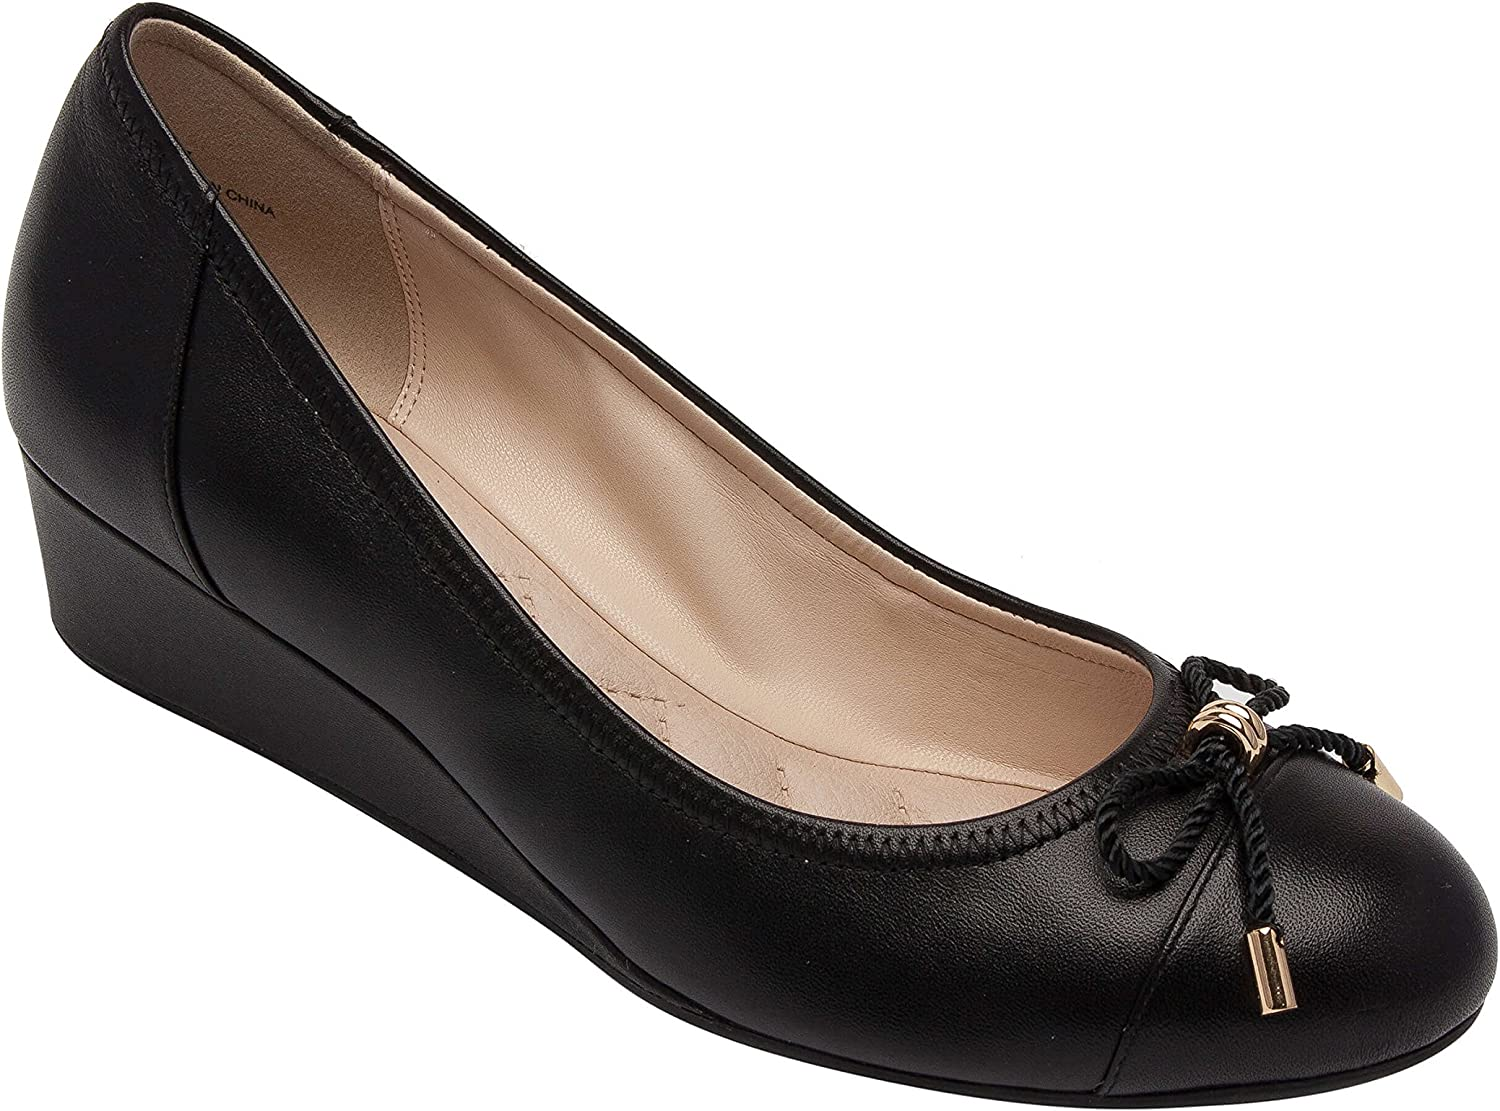 Pic & Pay Tiana   Women's Rope Bow Mid-Height Comfortable Round Toe Wedge Pump Black Leather 11M